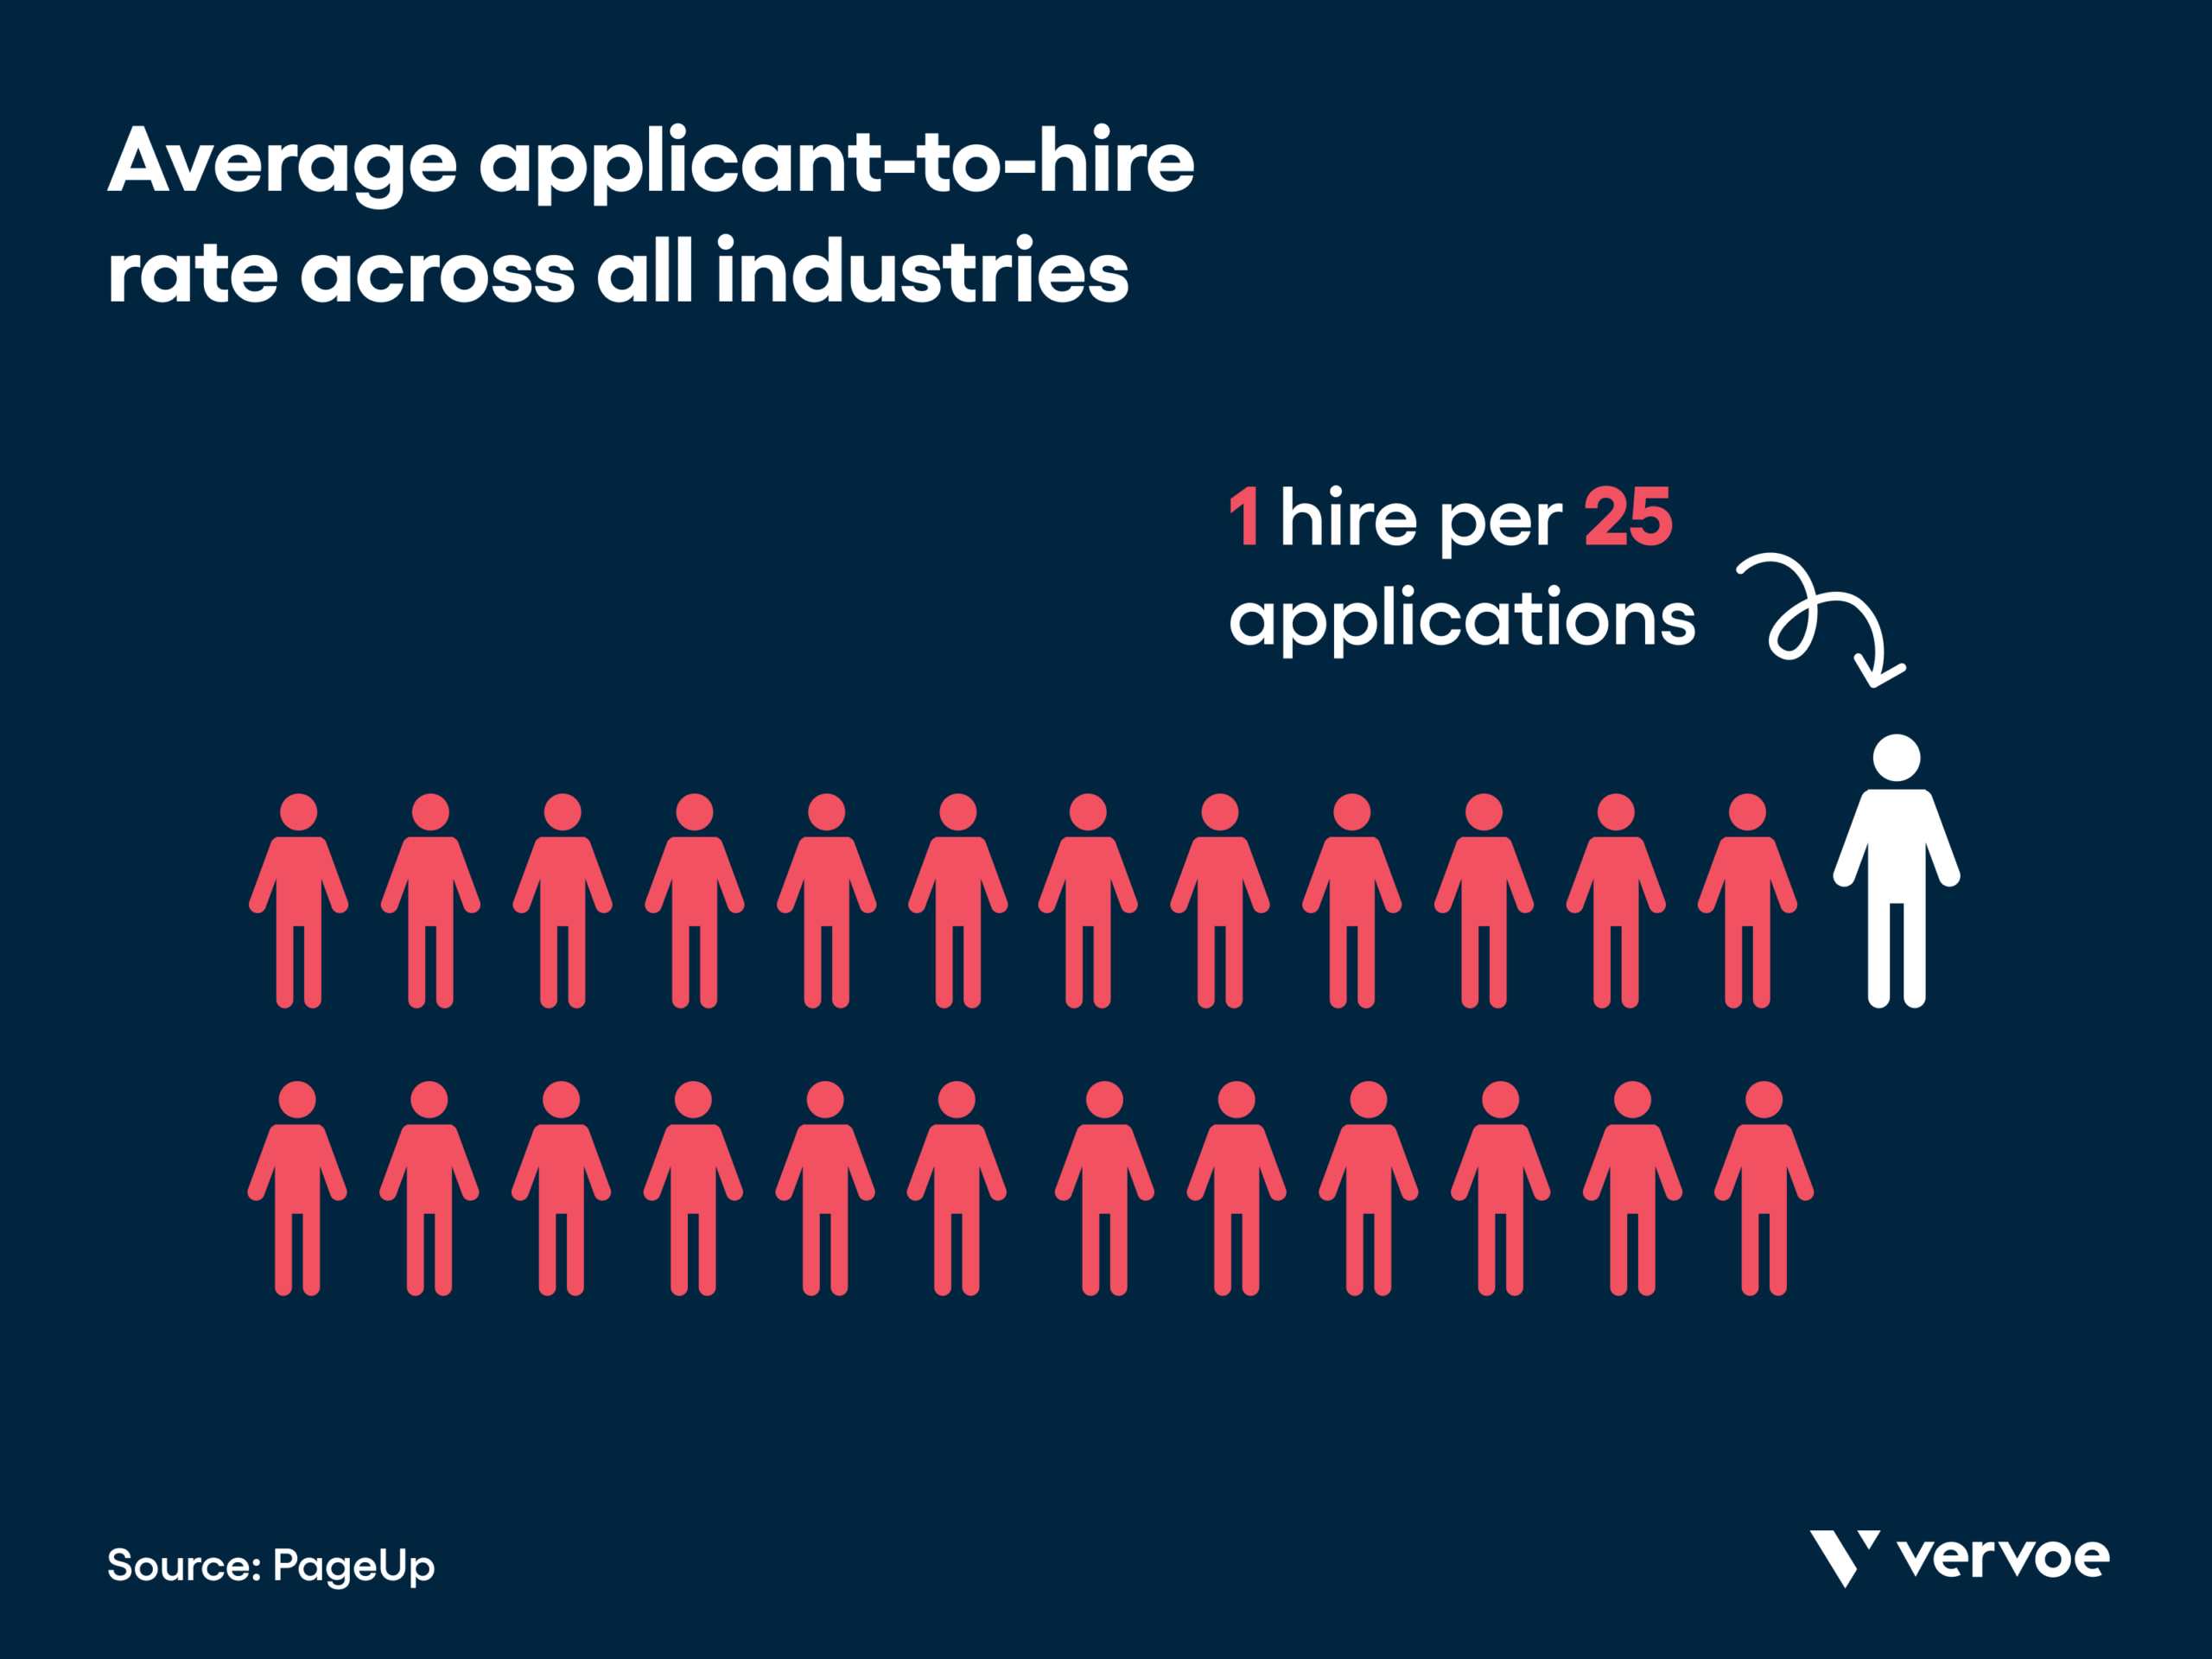 Average applicant to hire ratio, according to pageup